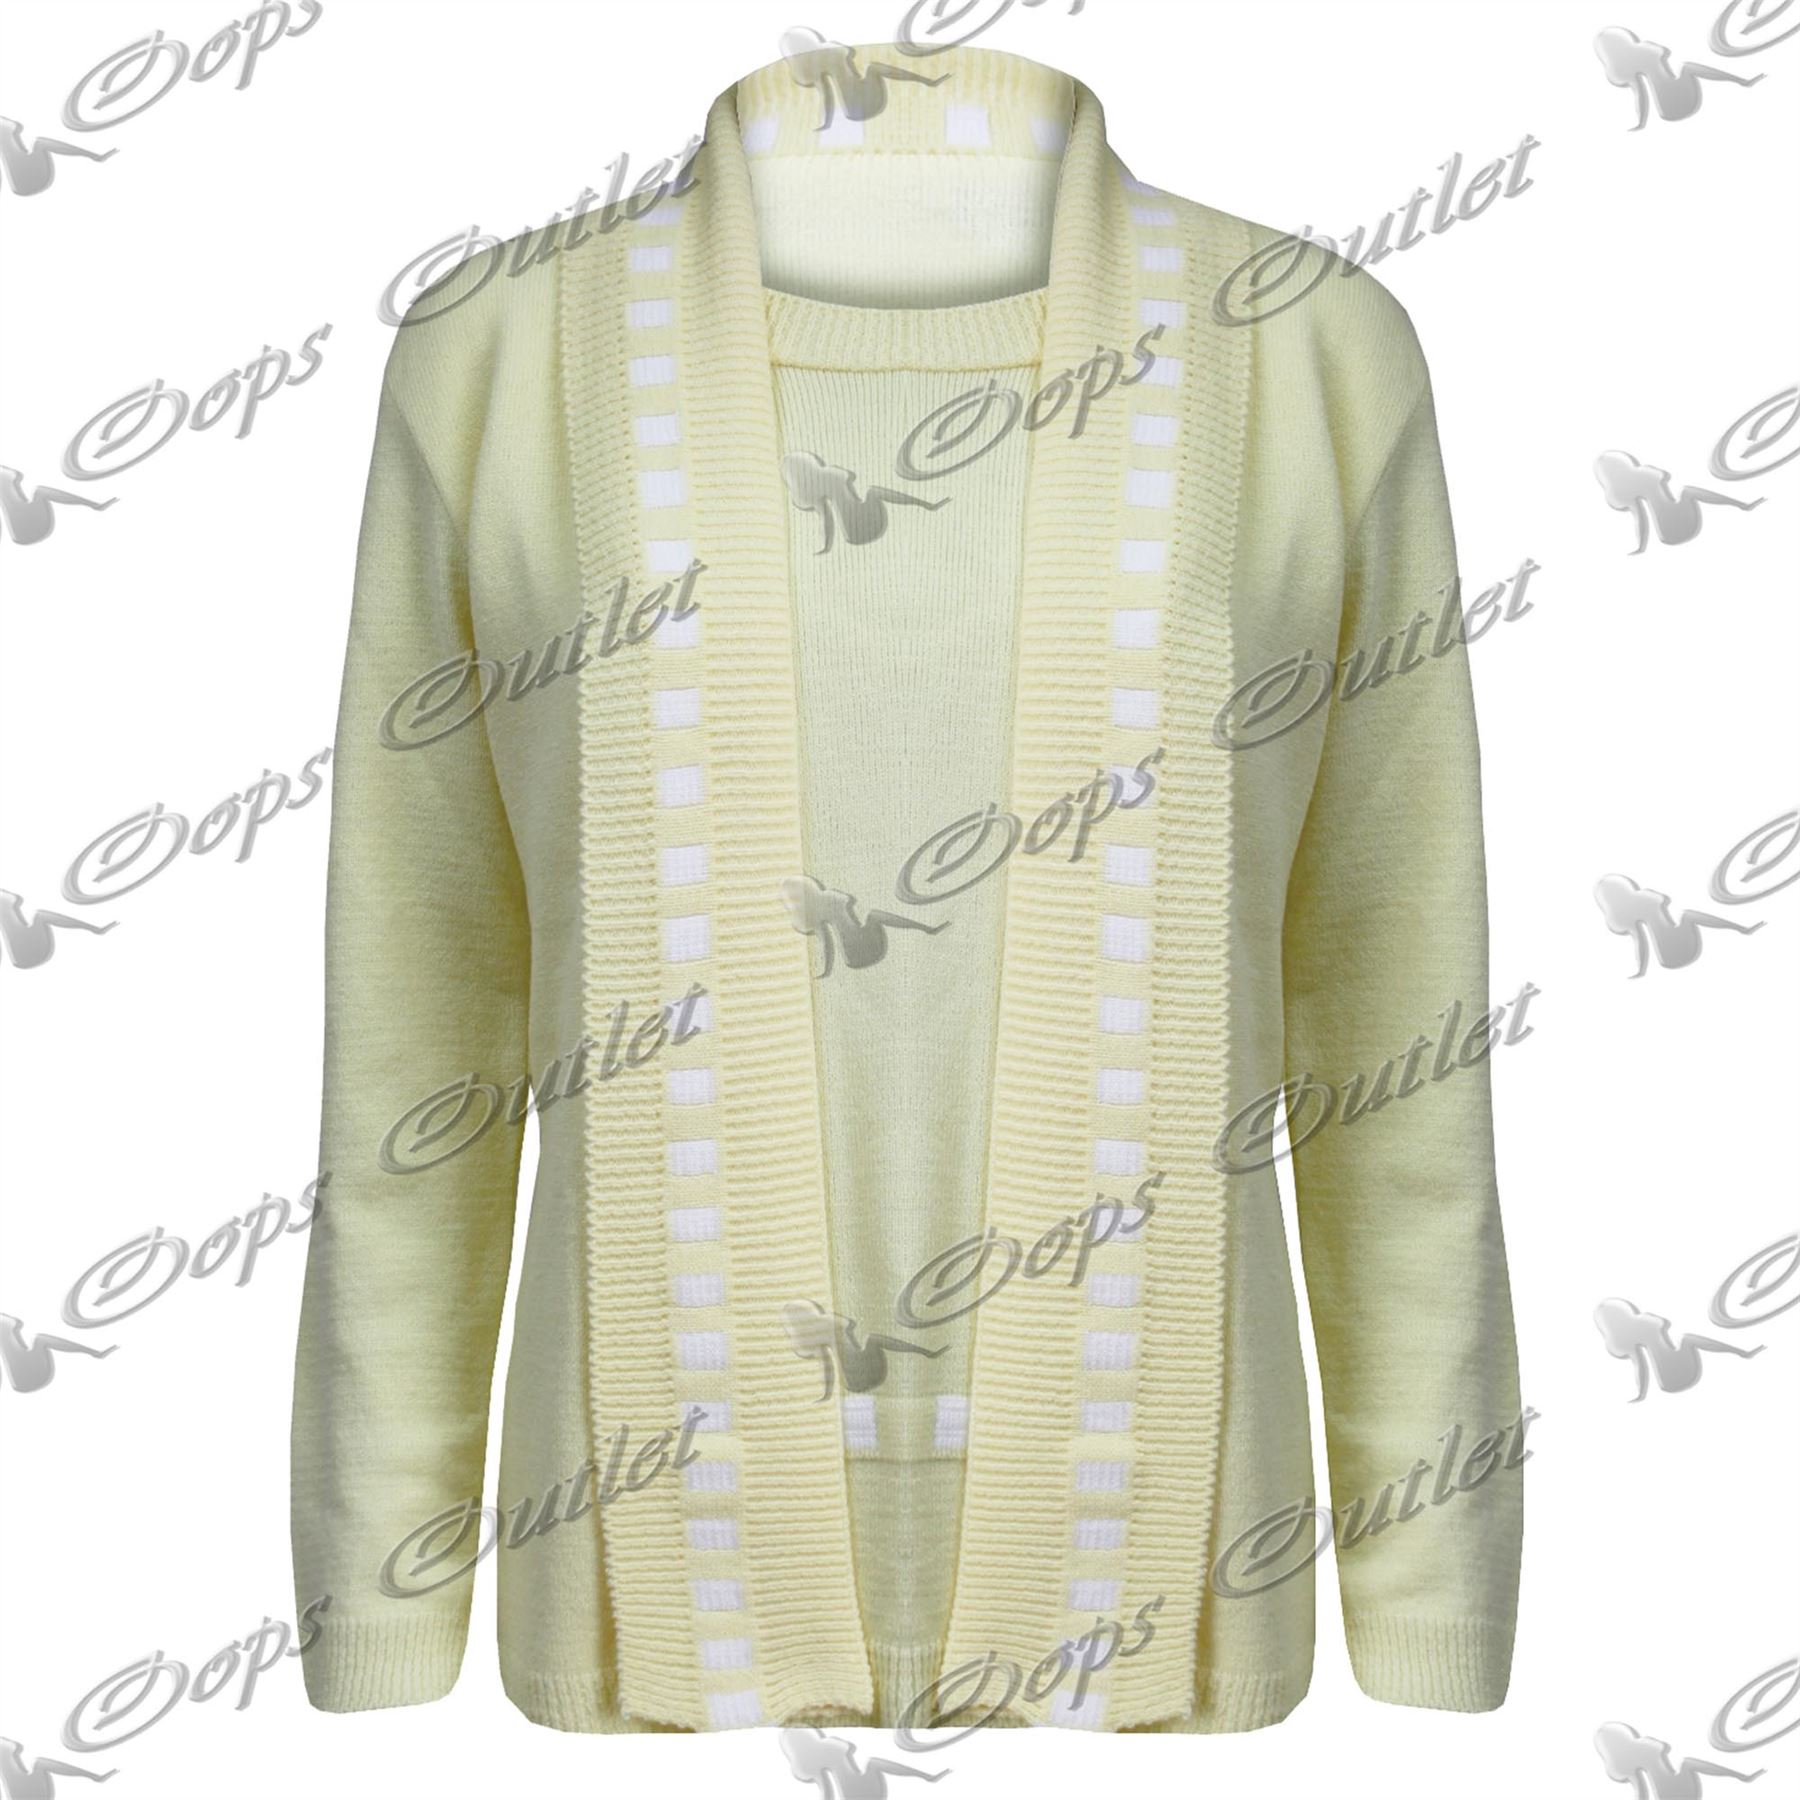 Femmes grand p re manches longues c ble tricot grosse maille cardigan long top ebay - Tricot grosse maille ...